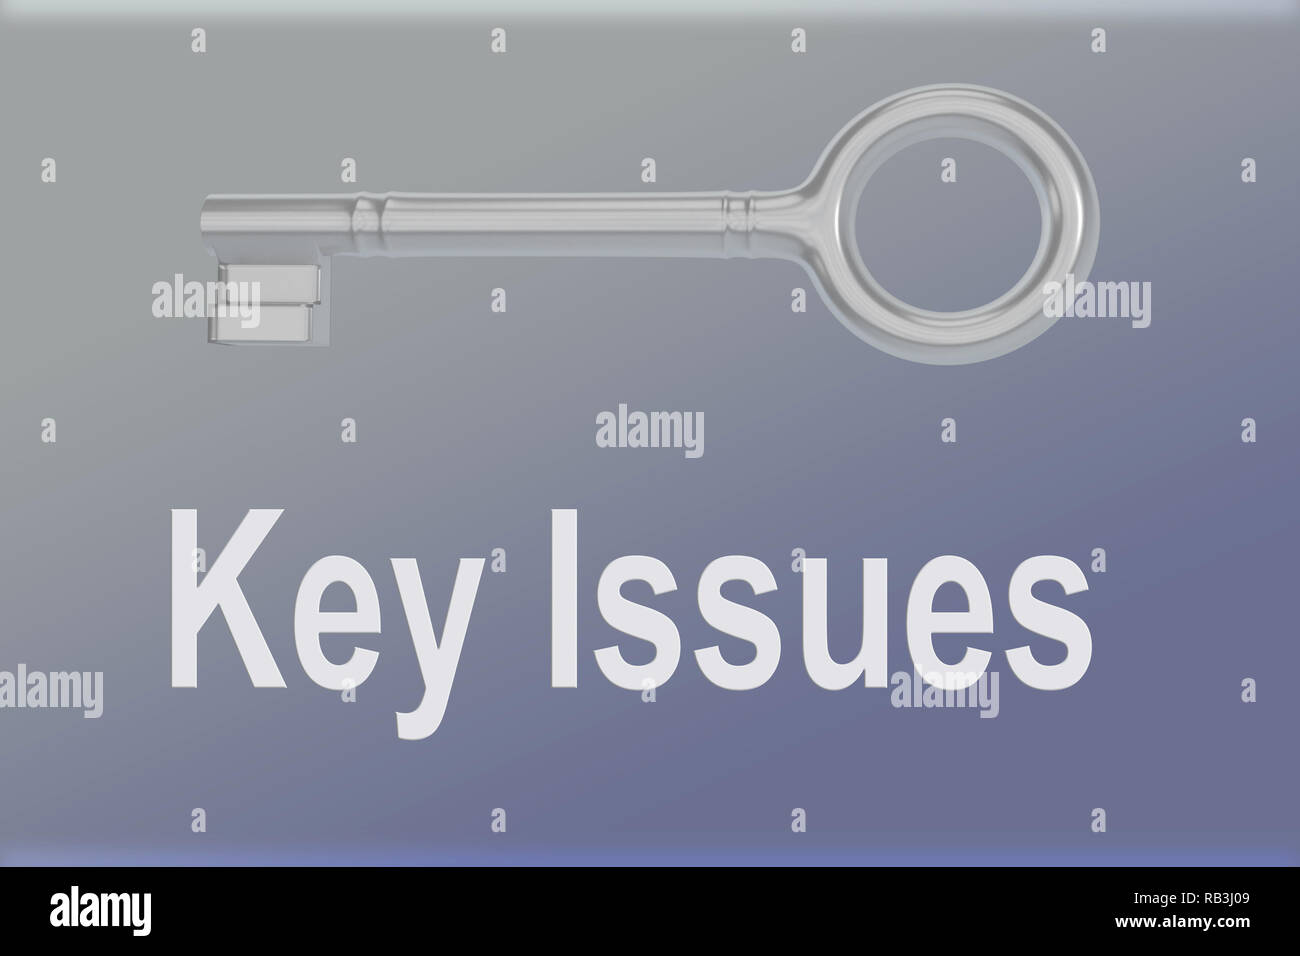 3D illustration of Key Issues script bellow a silver key, over a blue gradient background. - Stock Image